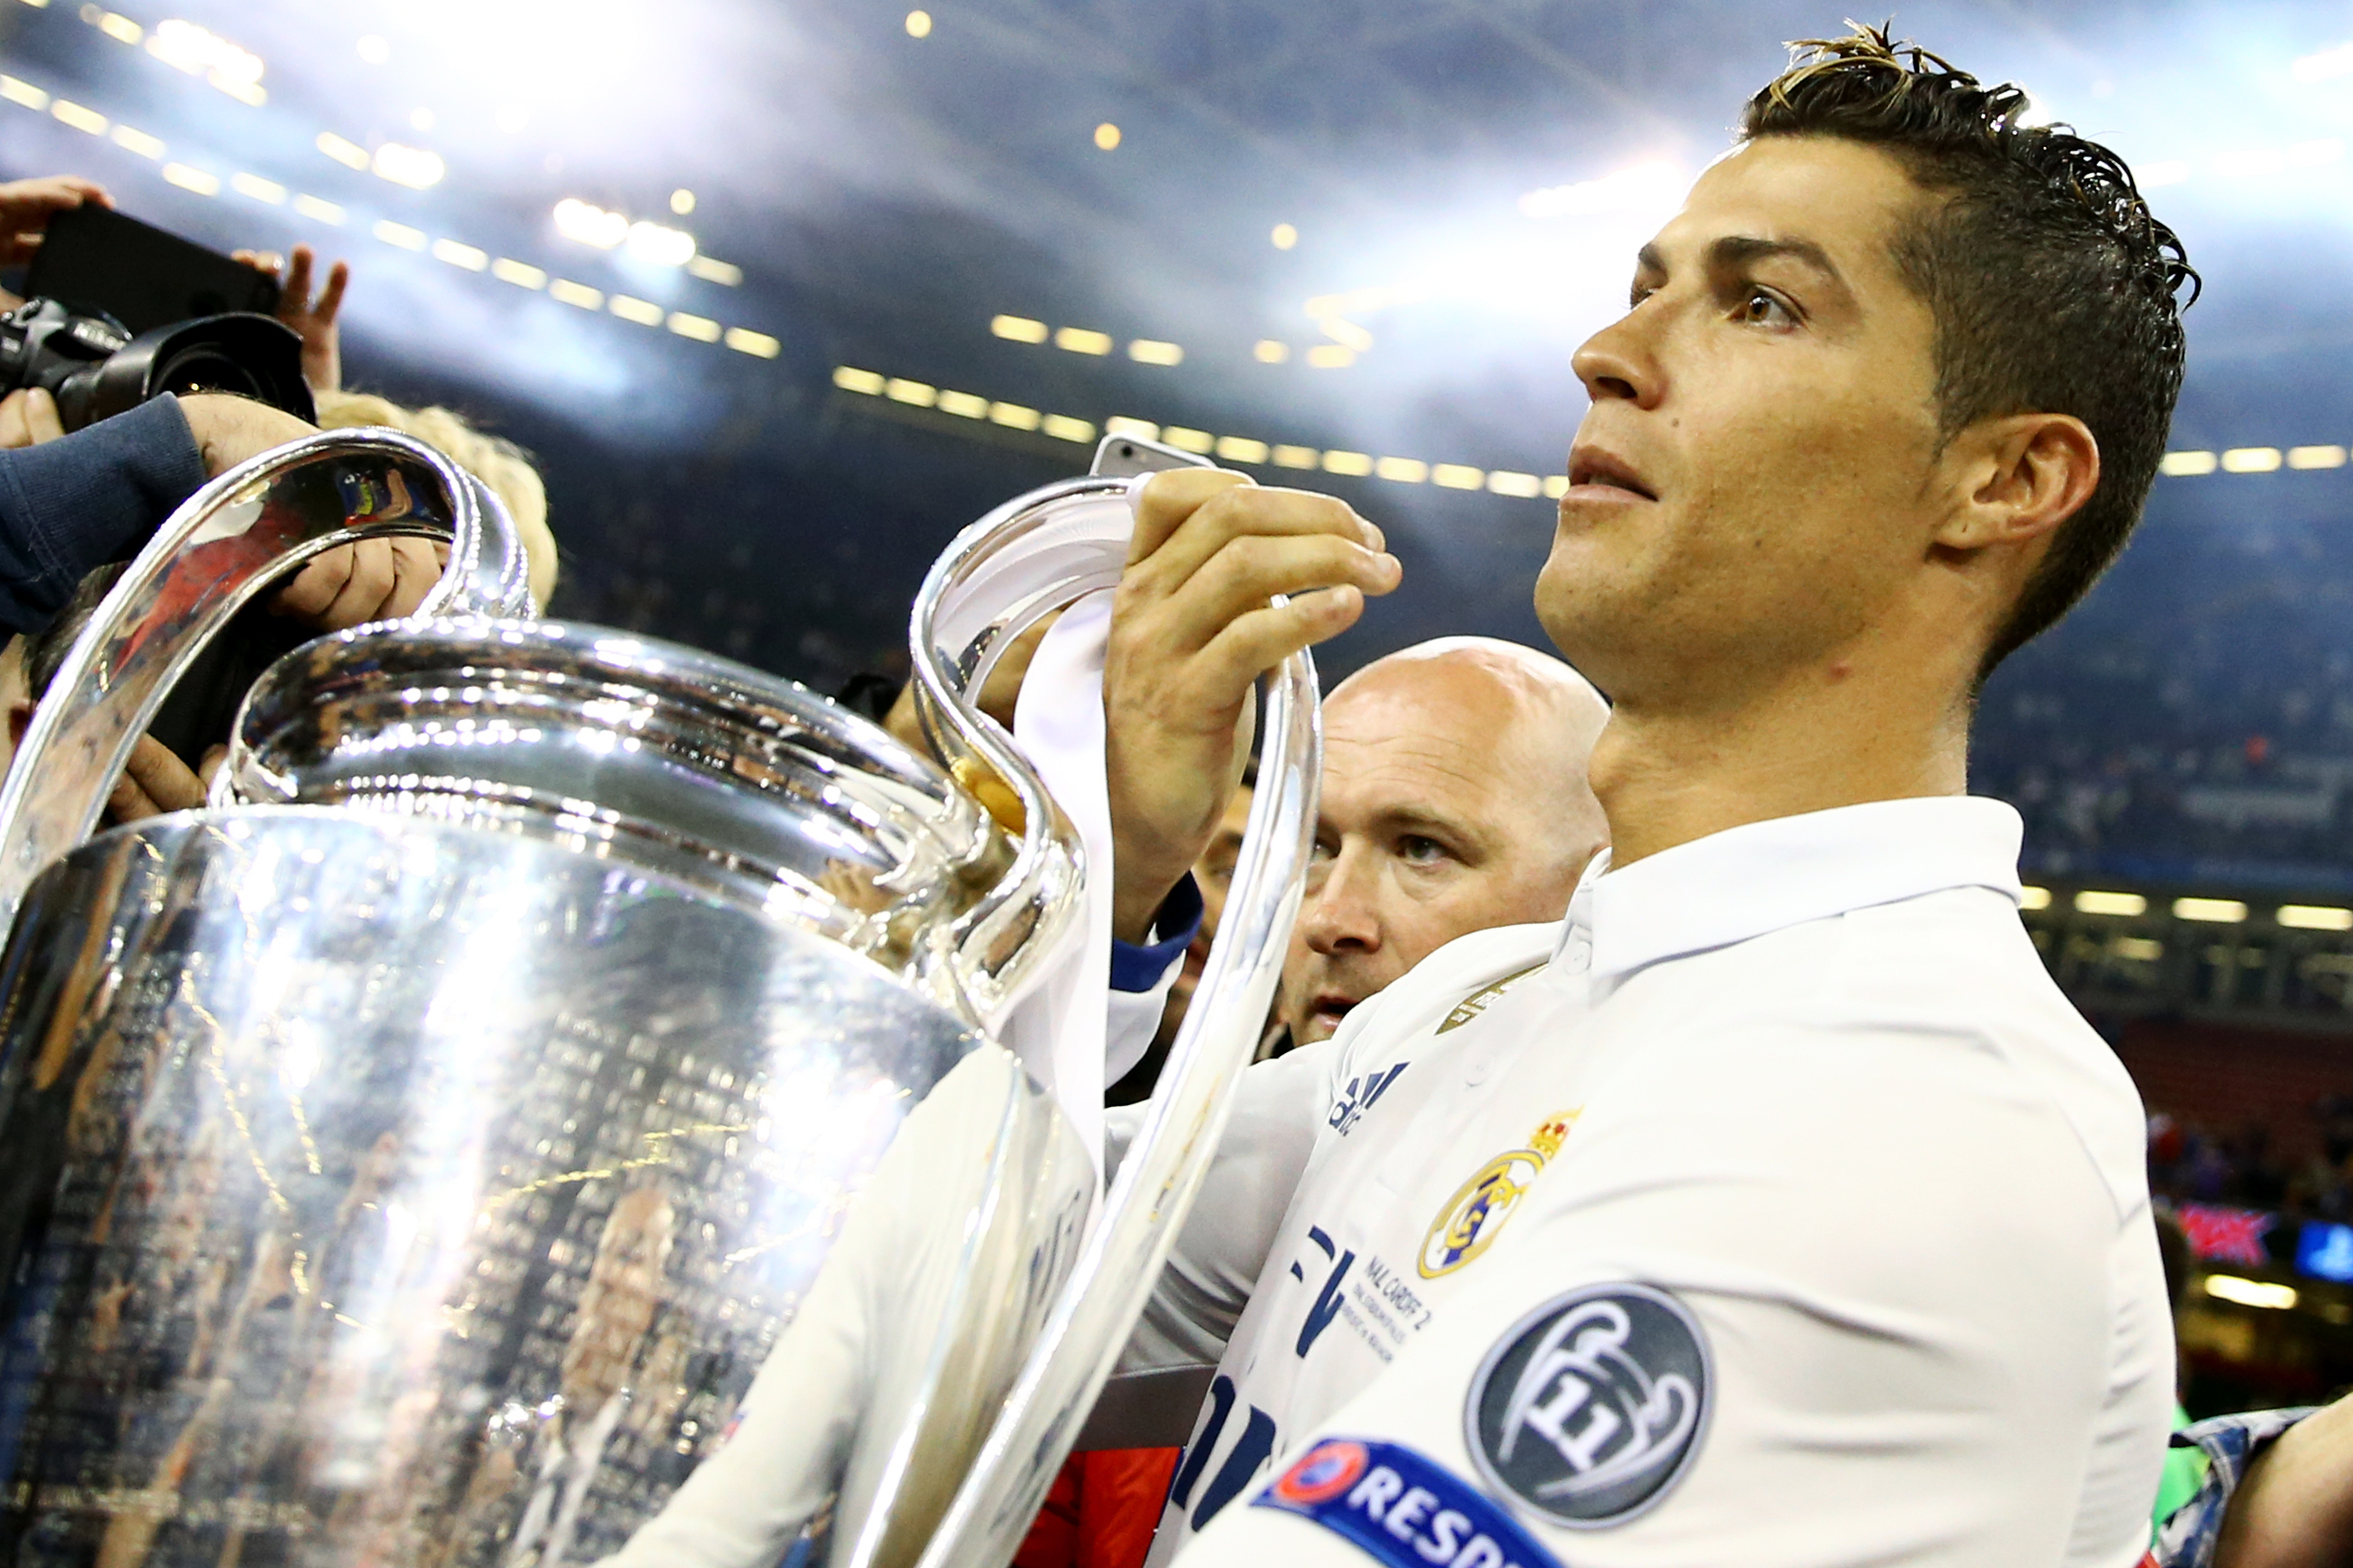 Cristiano Ronaldo Reportedly Wants Real Madrid Stay, Could Change After Court